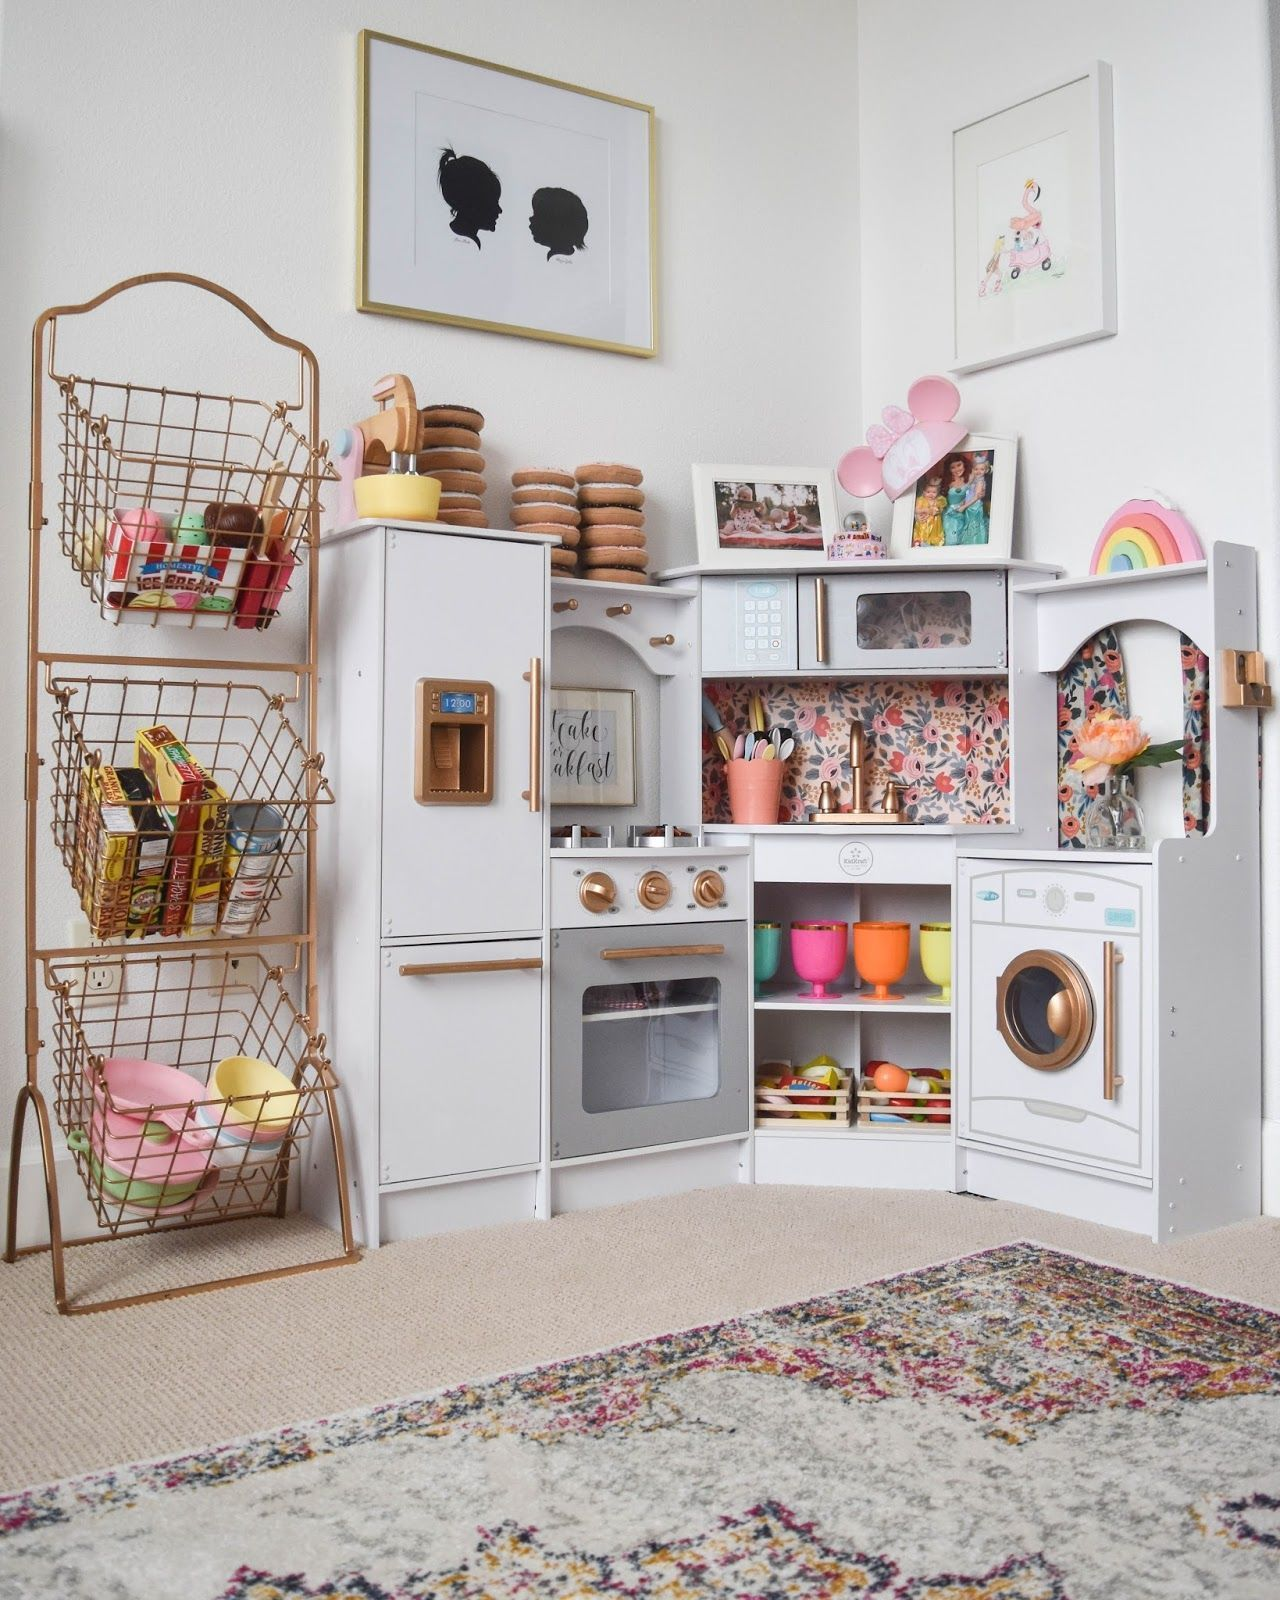 13 Clever And Stylish Ways To Organize Your Kids' Toys Future Tiny